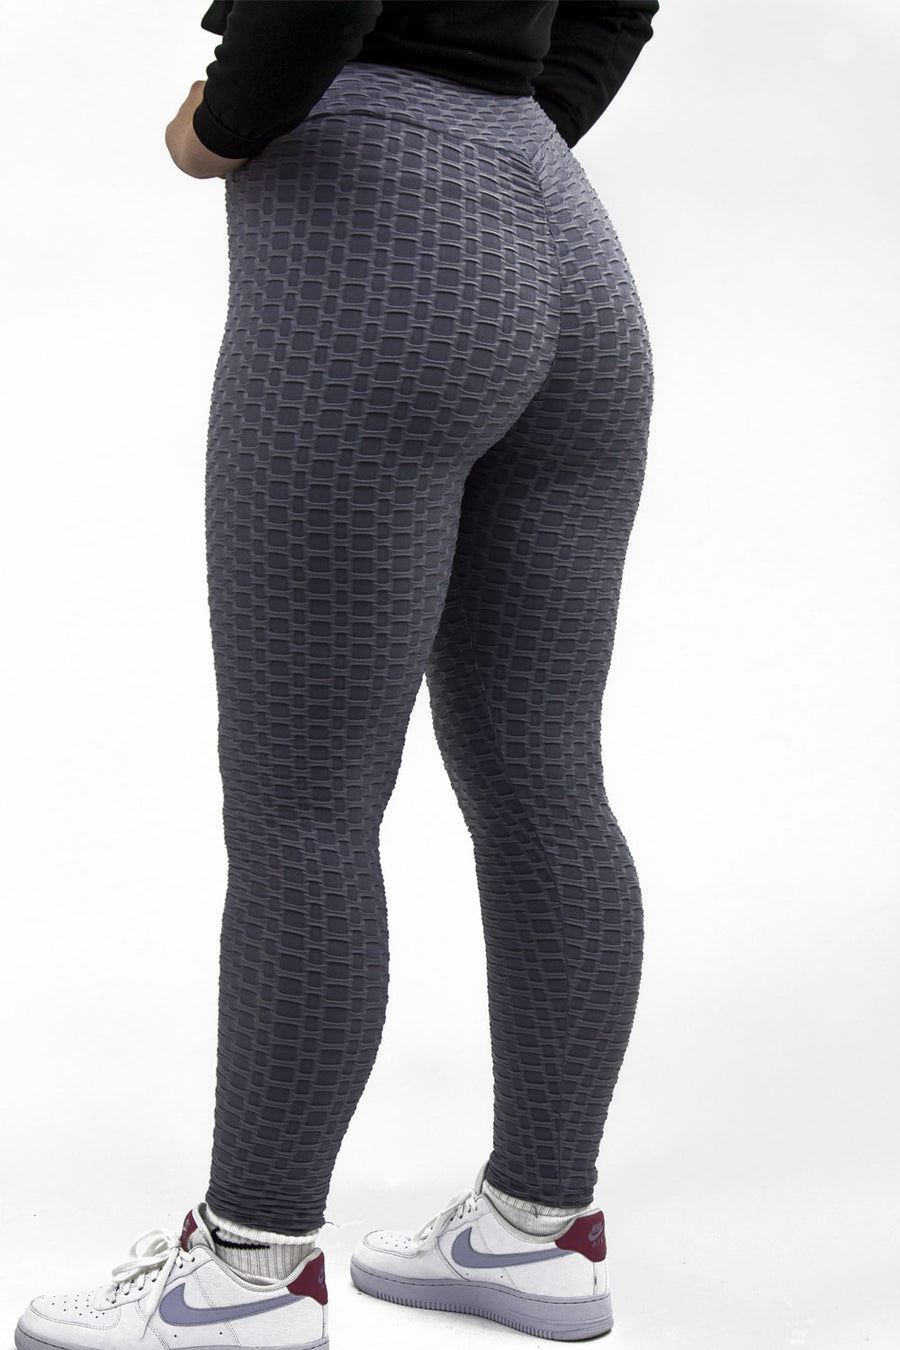 Grey Ruched Textured Active leggings - Daniella